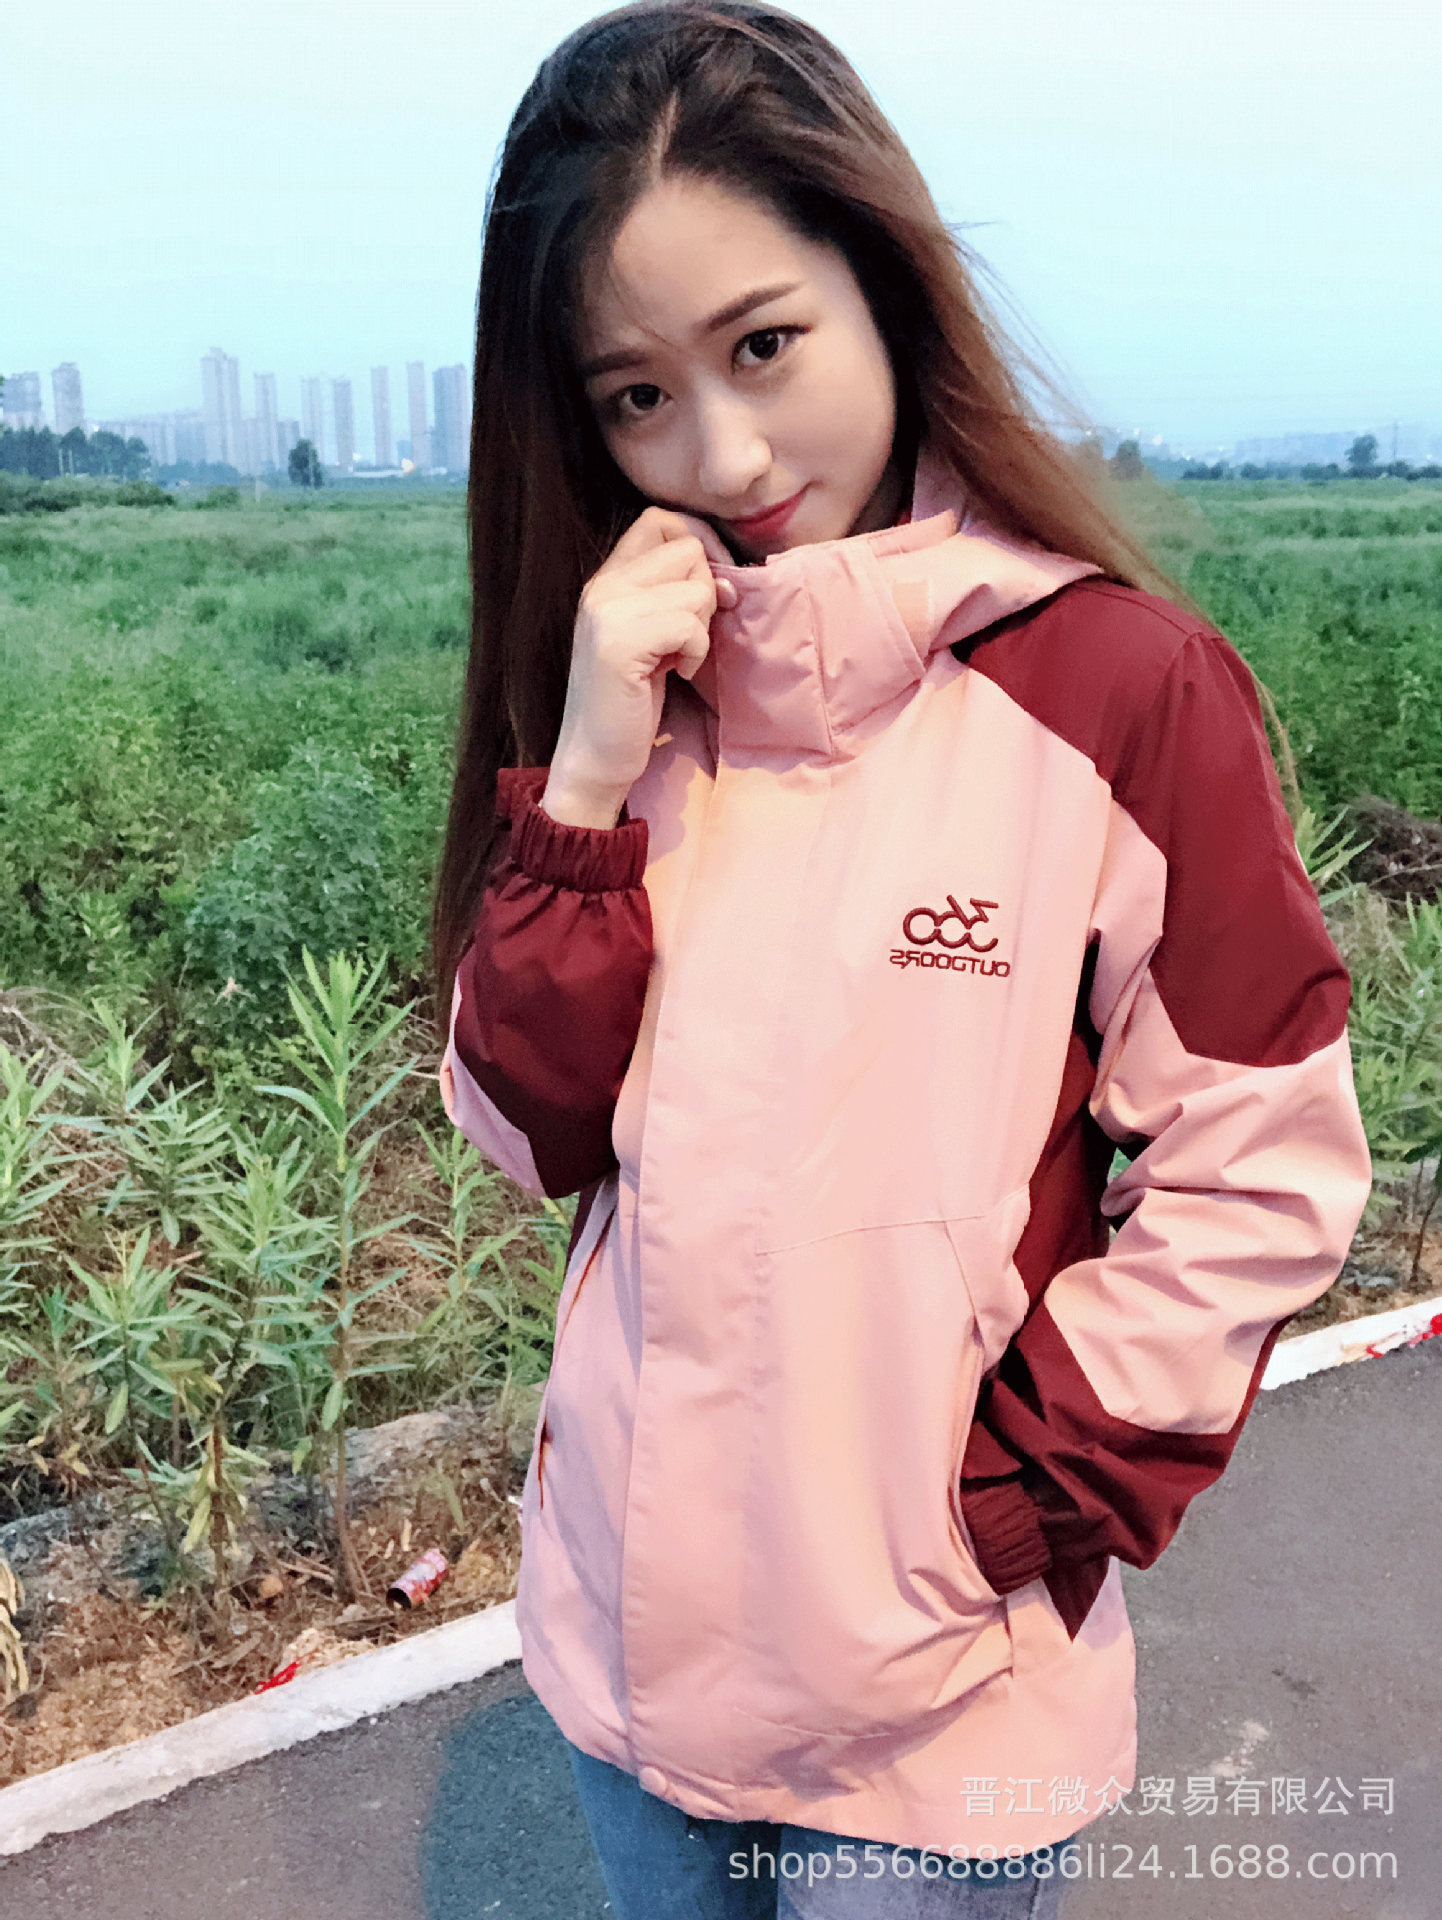 2018 Women's Winter Inner Fleece Waterproof Jacket Outdoor Sport Warm Brand Coat Hiking Camping Trekking Skiing Female Jackets